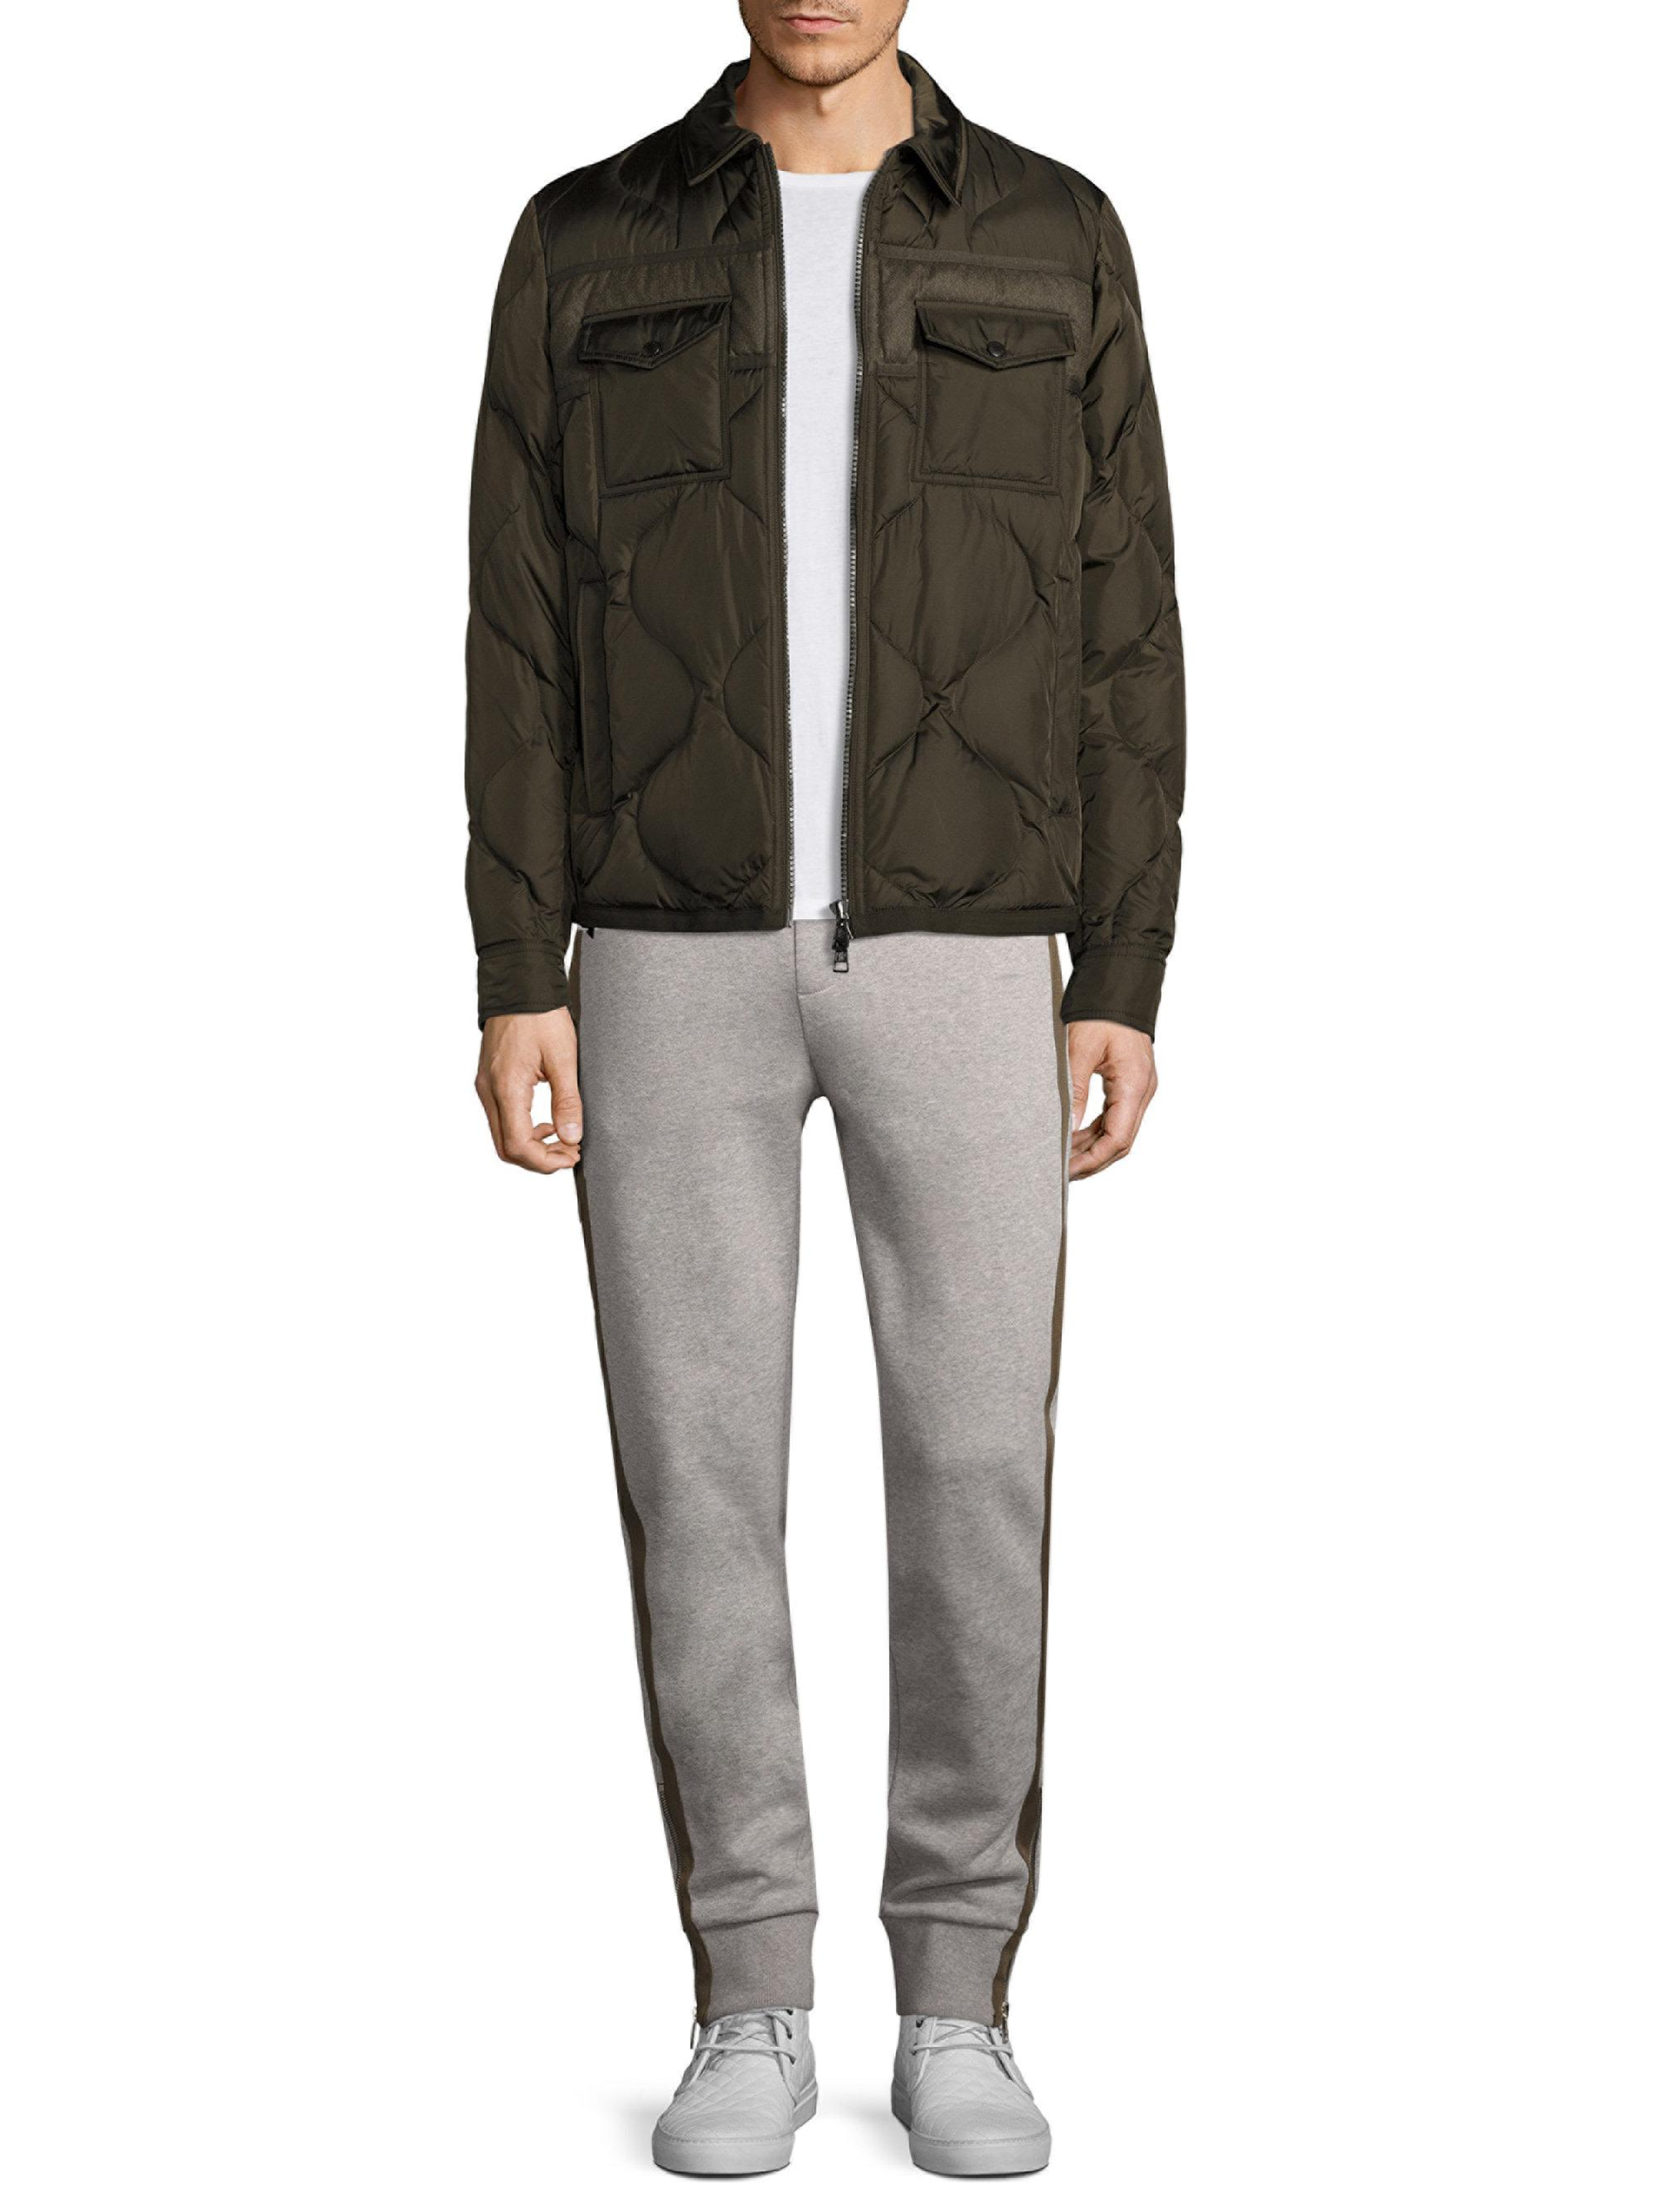 moncler stephan quilted jacket